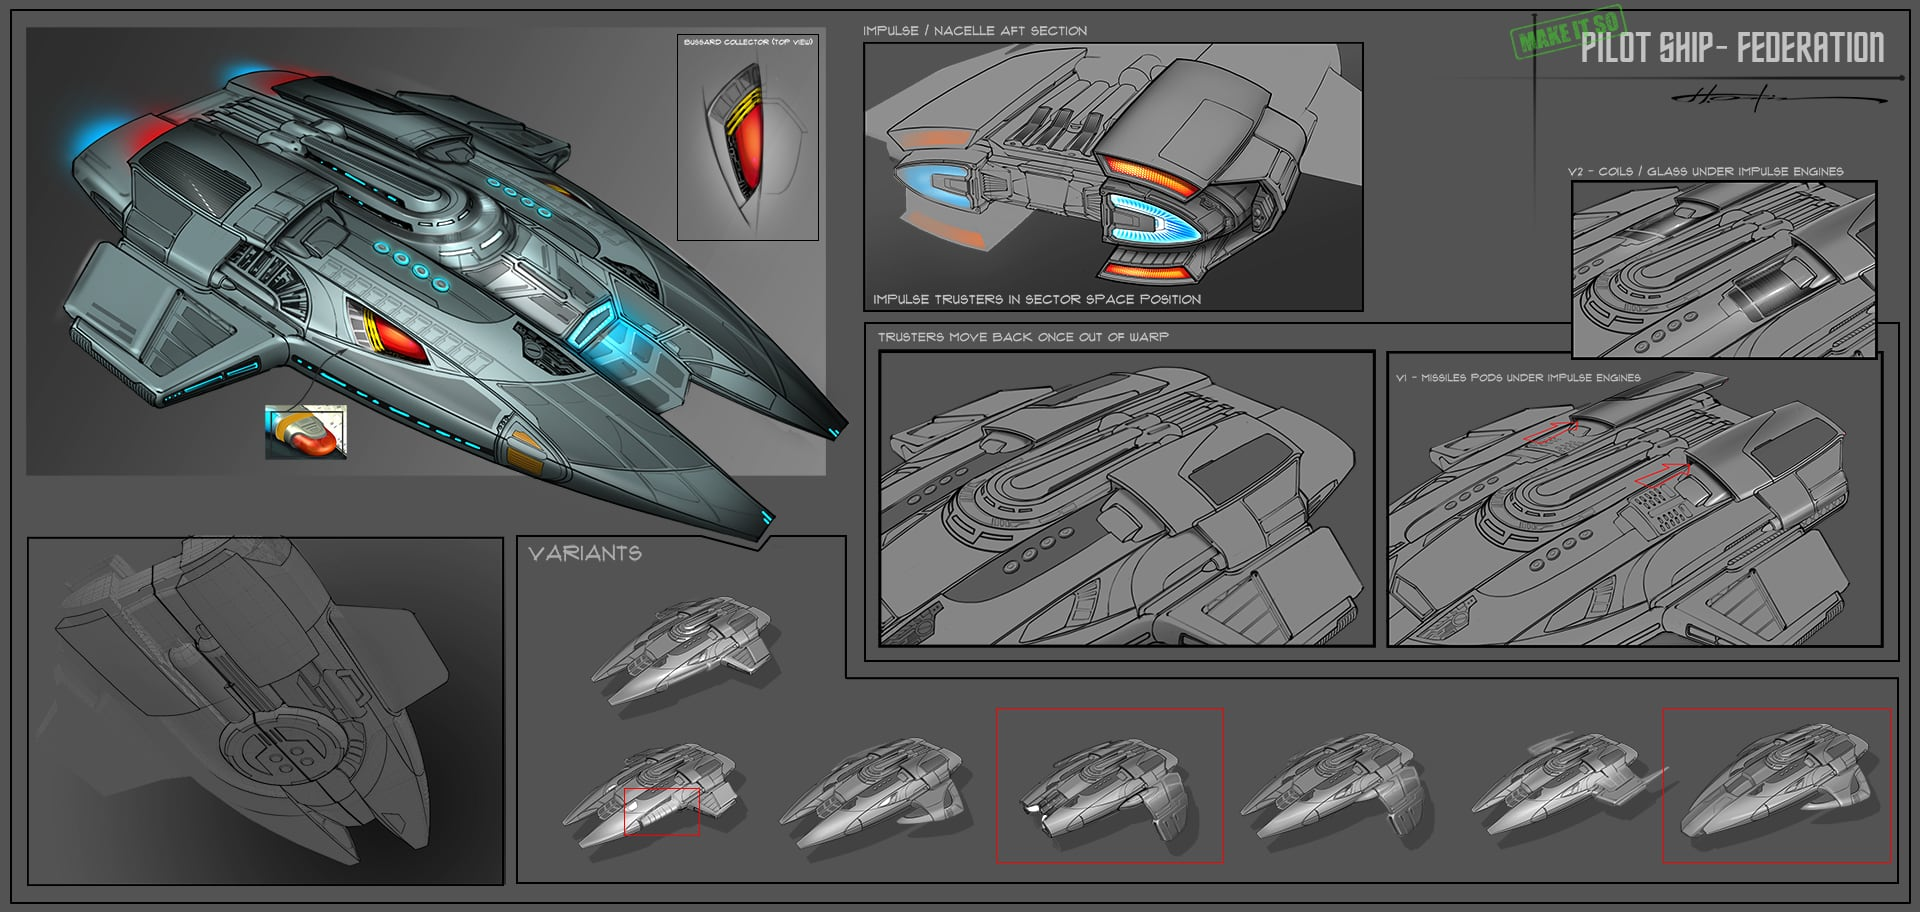 Star Trek Online: Art Of The Pilot Ships | Star Trek Online